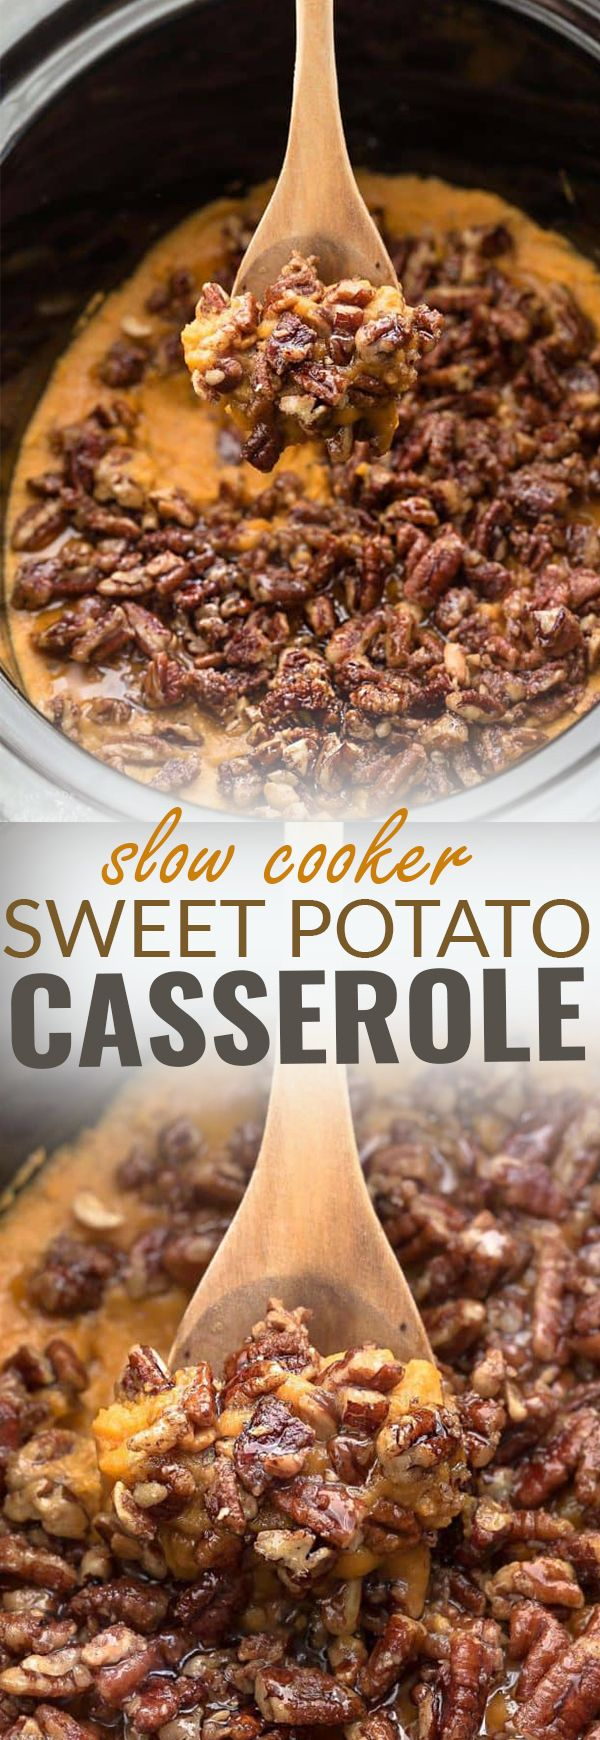 Healthy Paleo Slow Cooker Sweet Potato Casserole is the perfect easy side dish for Thanksgiving and the holidays. Best of all, it's made entirely in the crock pot, saving you valuable oven space. No preboling the potatoes required!